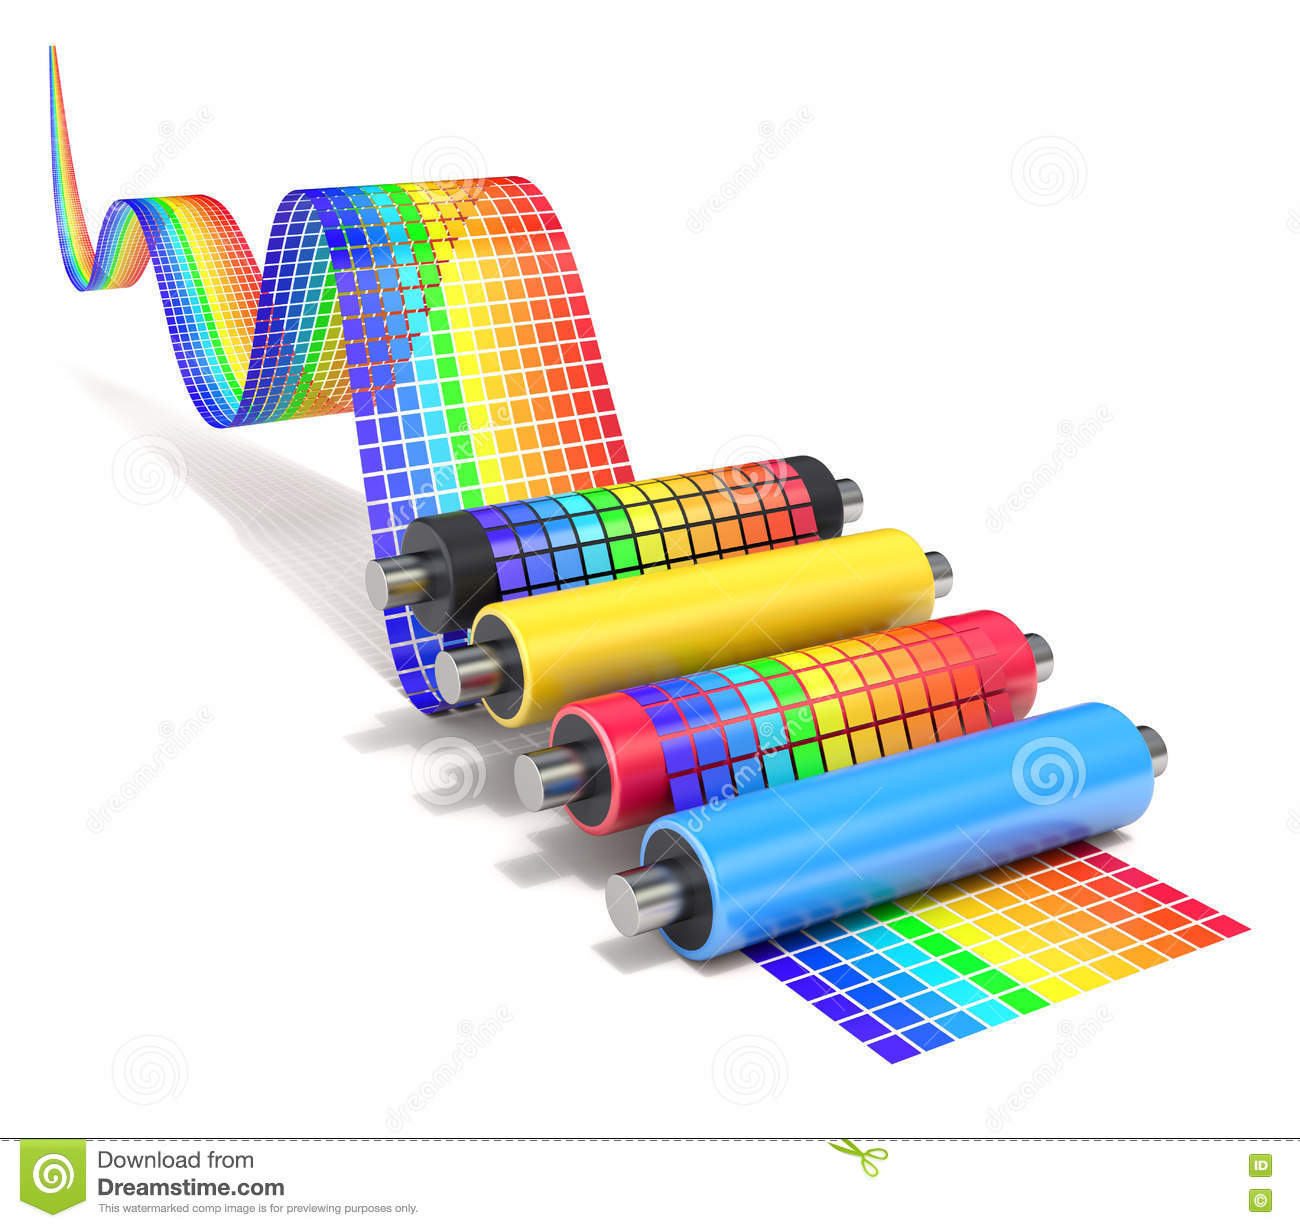 Cmyk Set Of Printer Rollers With Wavy Color Chart Stock Illustration